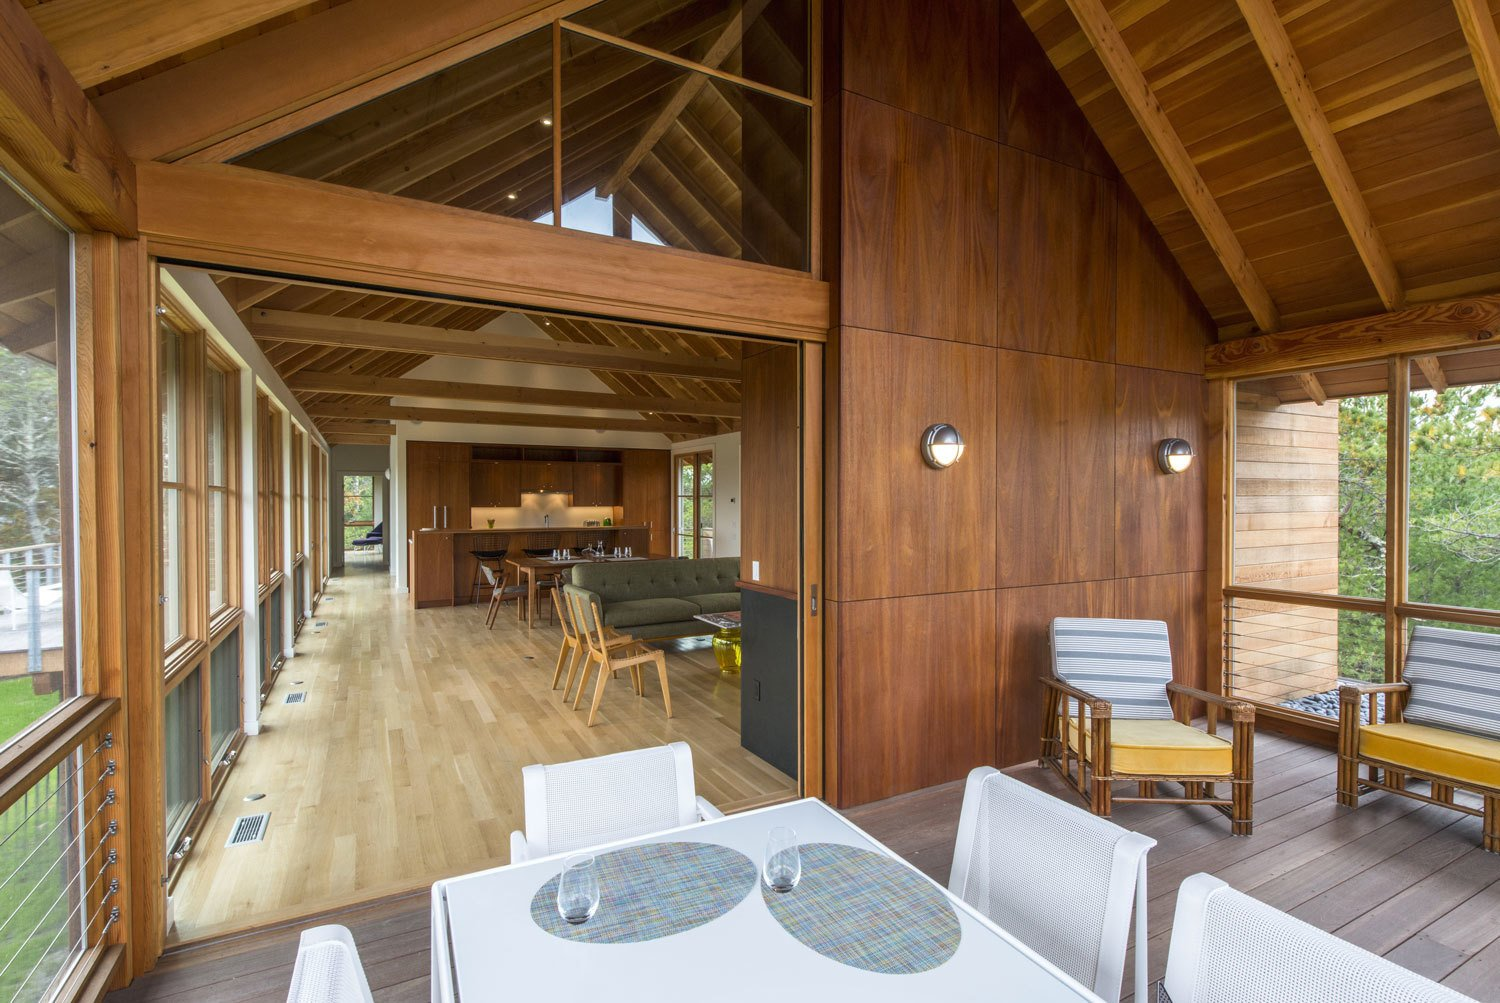 Varying types of wood make up the home's interior: white oak planks for the floor, solid mahogany for the cabinets, and fir for the ceilings, beams, columns, and trim.  Photo 1 of 10 in 10 Enclosed Porches That Are Put to Good Use from A Modern Take on the Gabled Cabin in Cape Cod